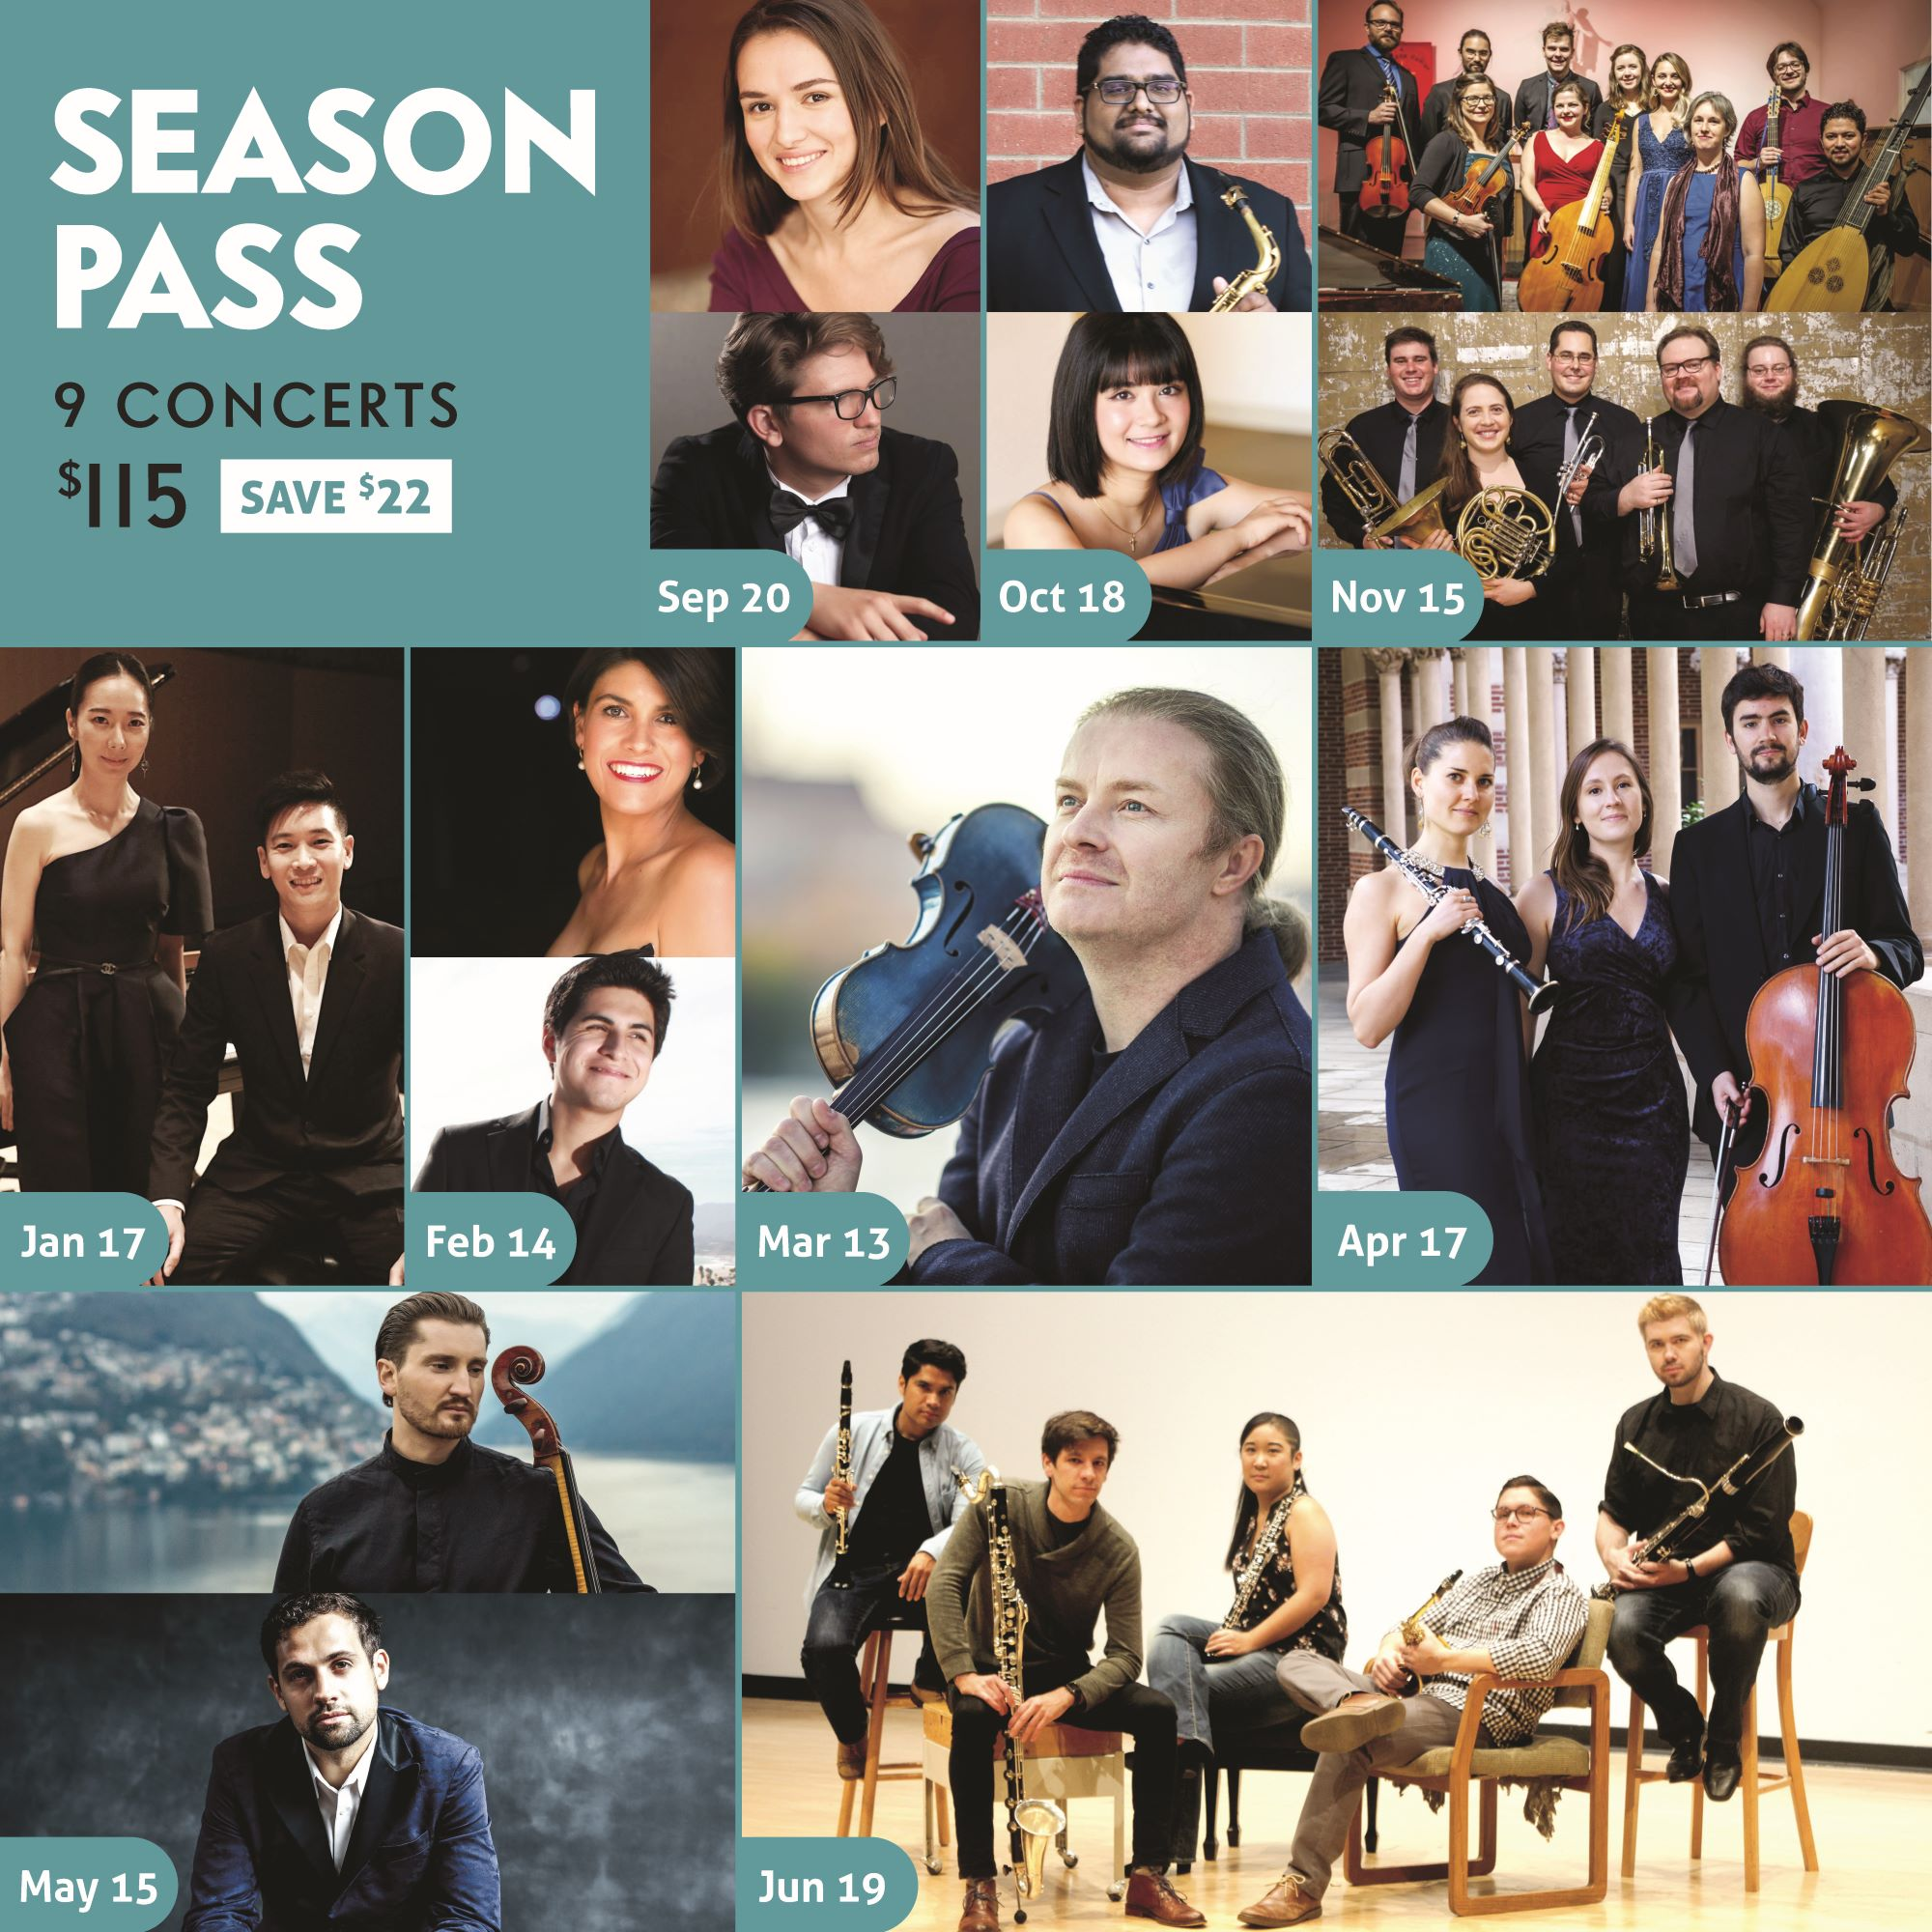 mbs-season-pass19-20-poster small.jpg